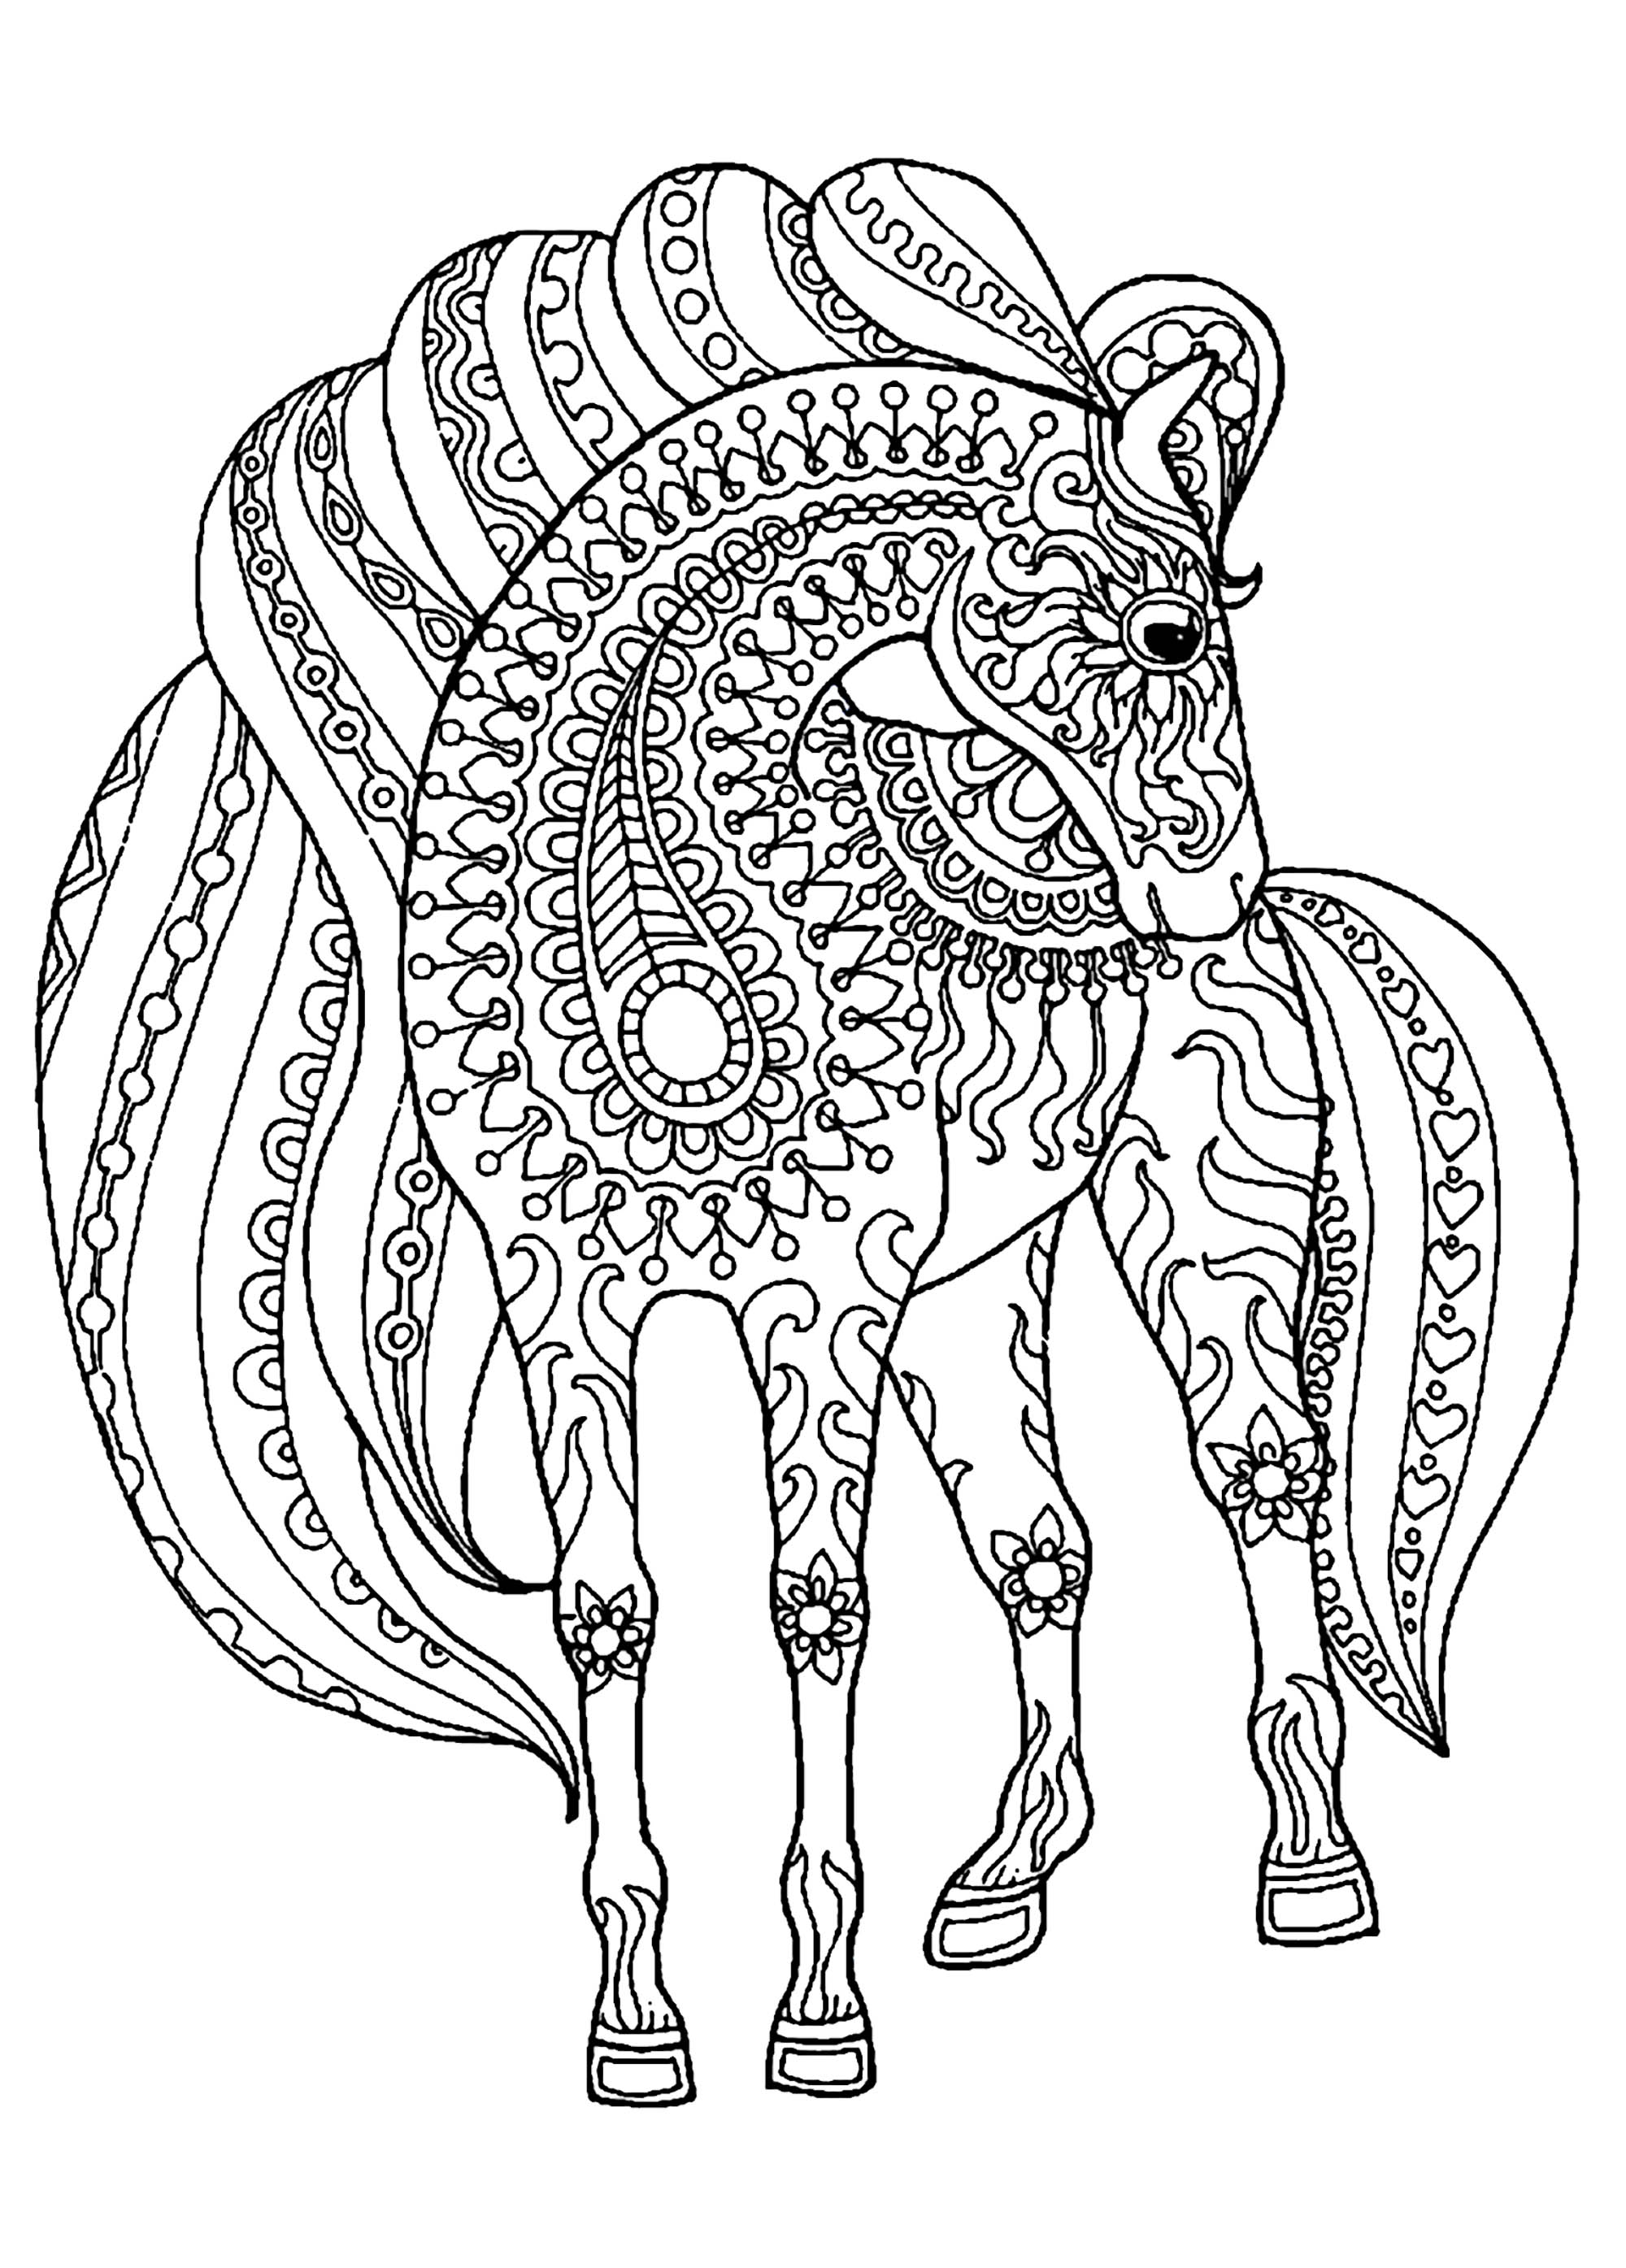 coloring pages of horses to print horse coloring pictures to print beautiful elegant pages to coloring horses of print